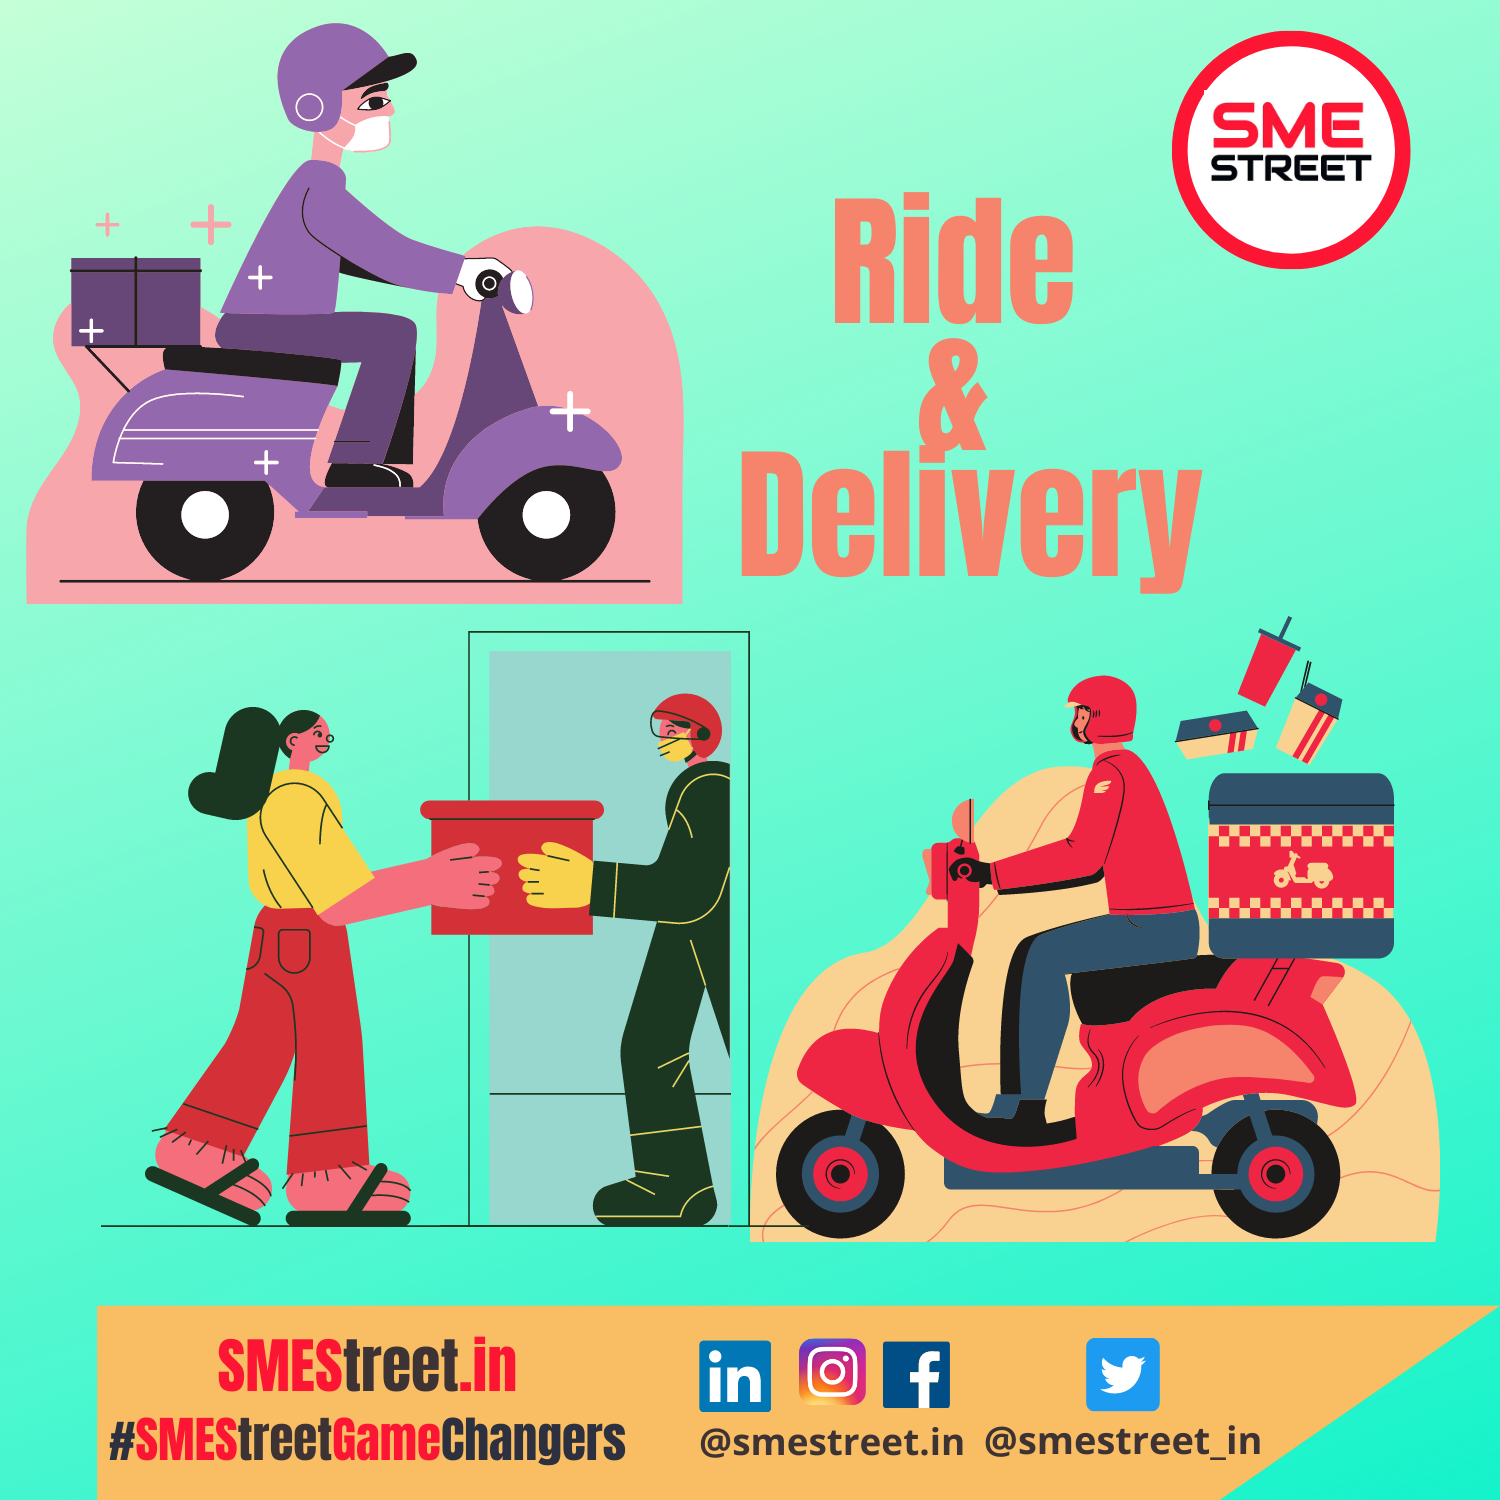 Whide: First Ride and Delivery App Runs on Trust Launches in India